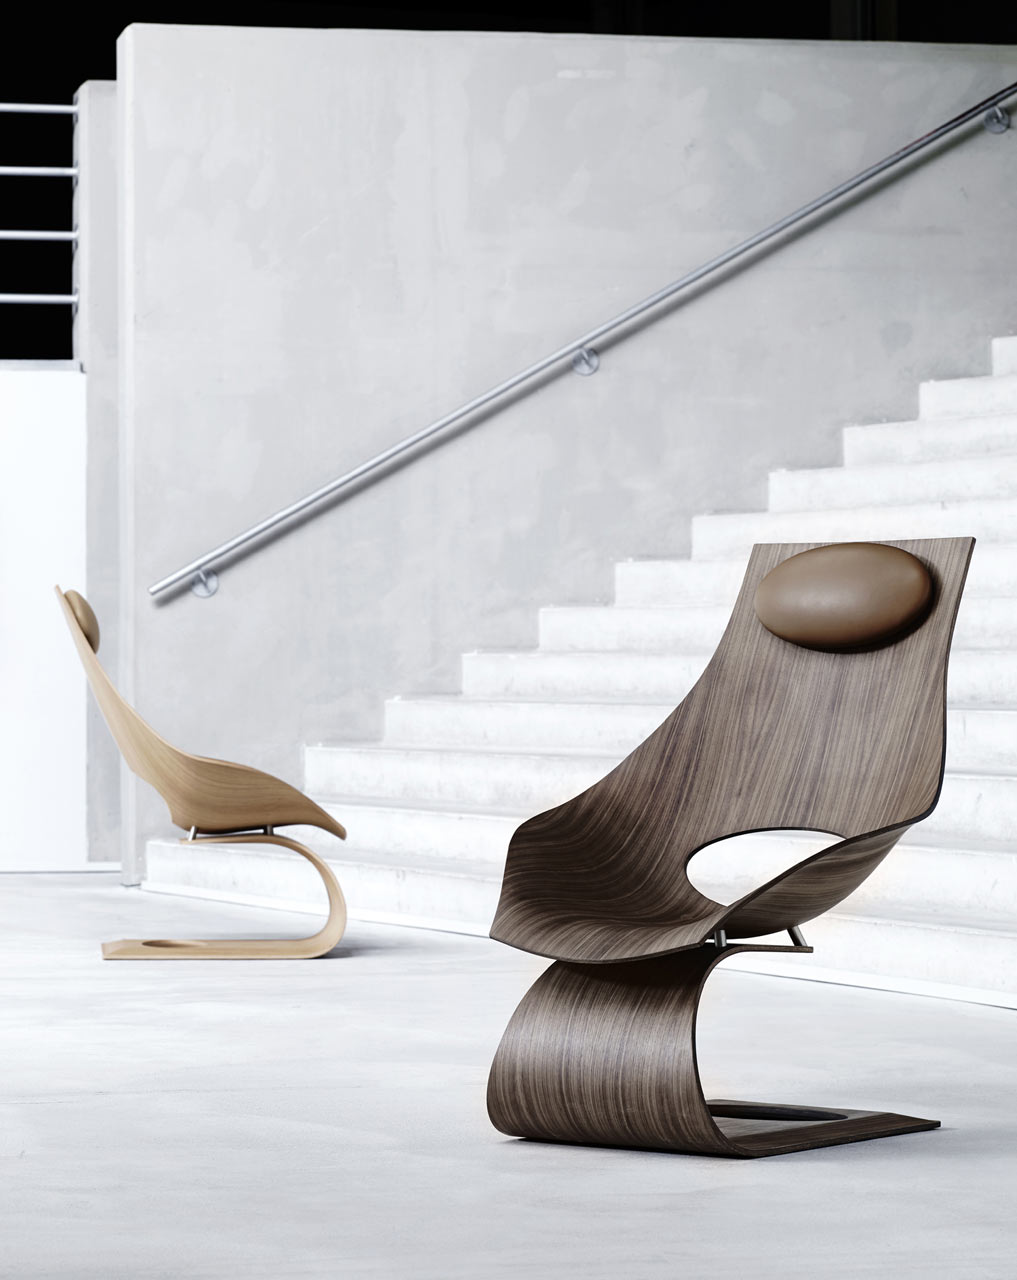 Dream-Chair-Tadao-Ando-Carl-Hansen-1